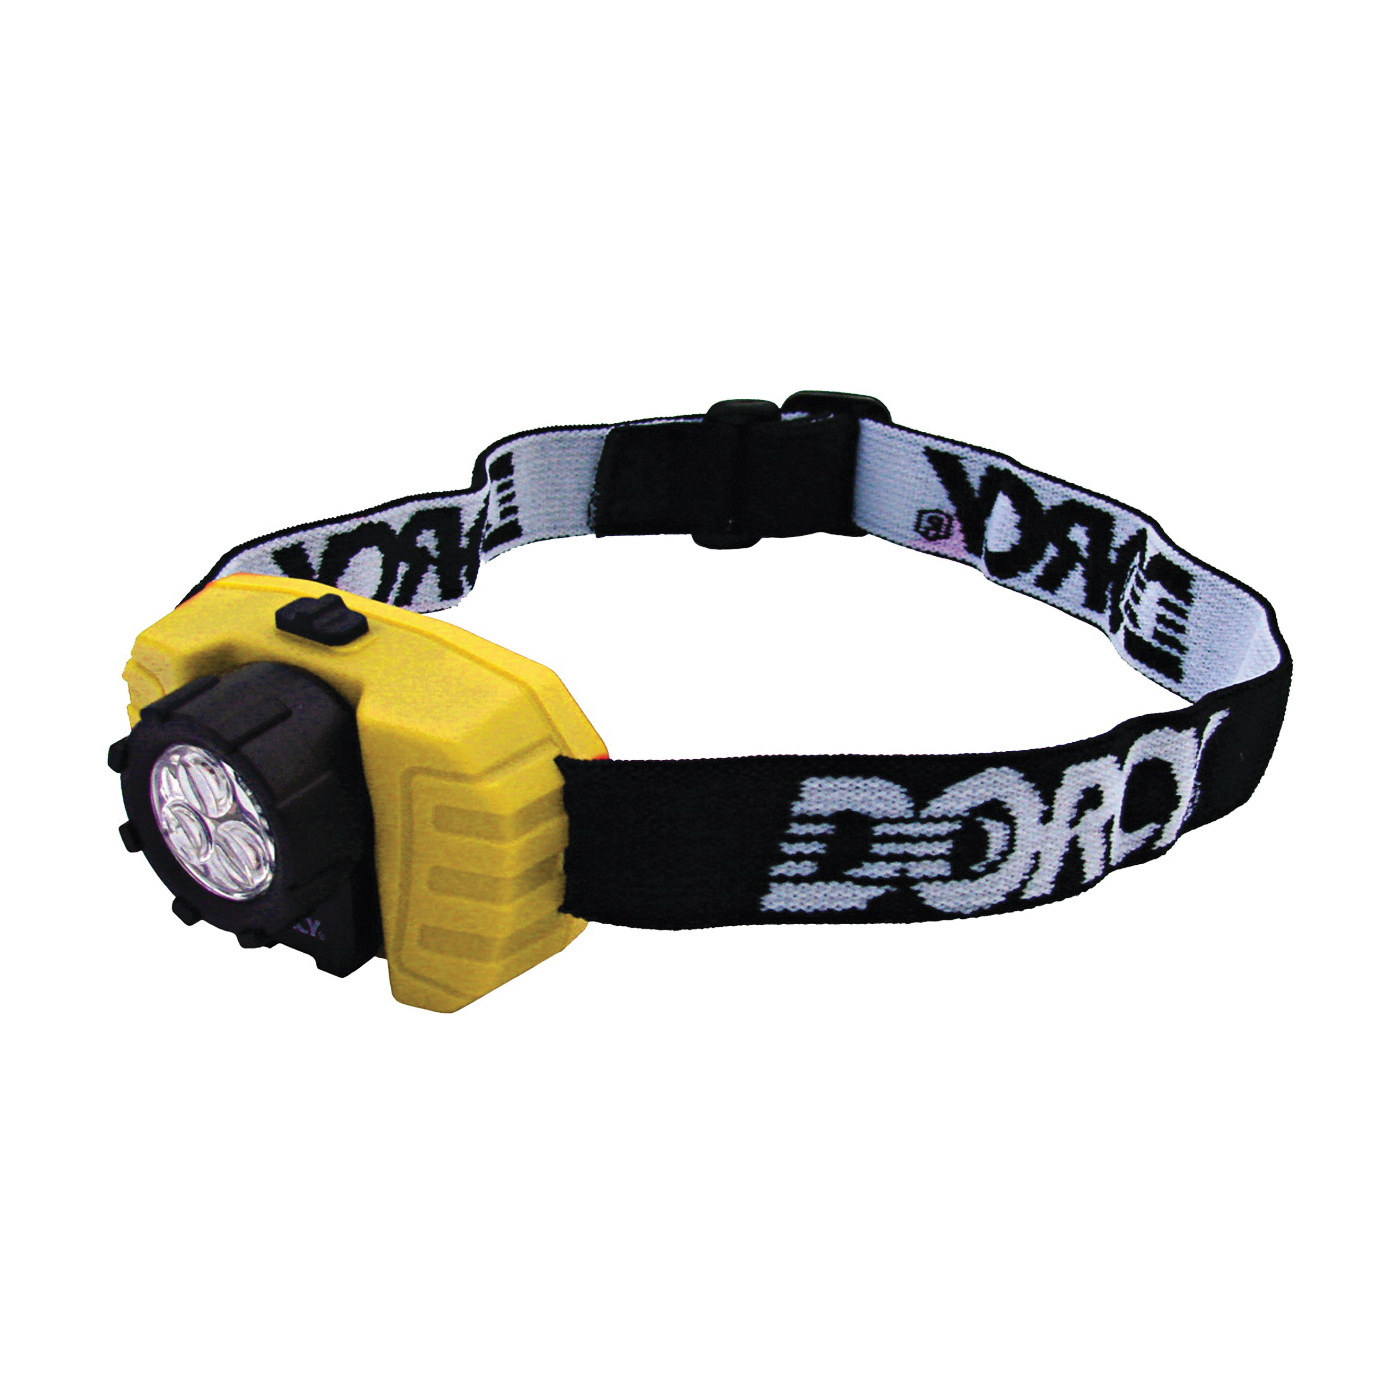 Picture of Dorcy 41-2099 Compact Headlight, AAA Battery, LED Lamp, 50 Lumens, 15 m Beam Distance, 70 hr Run Time